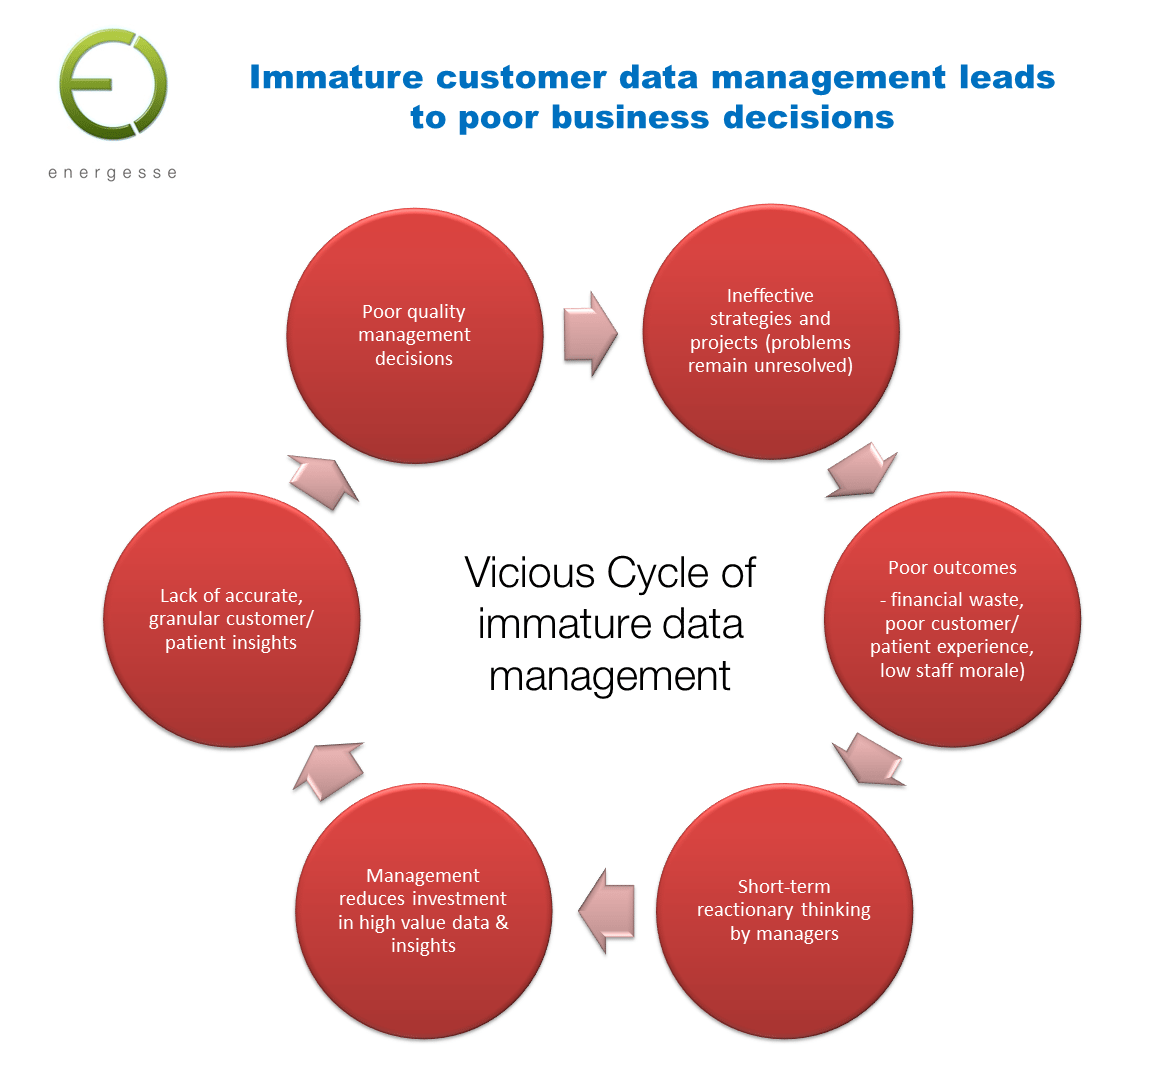 Immature customer data management leads to poor business